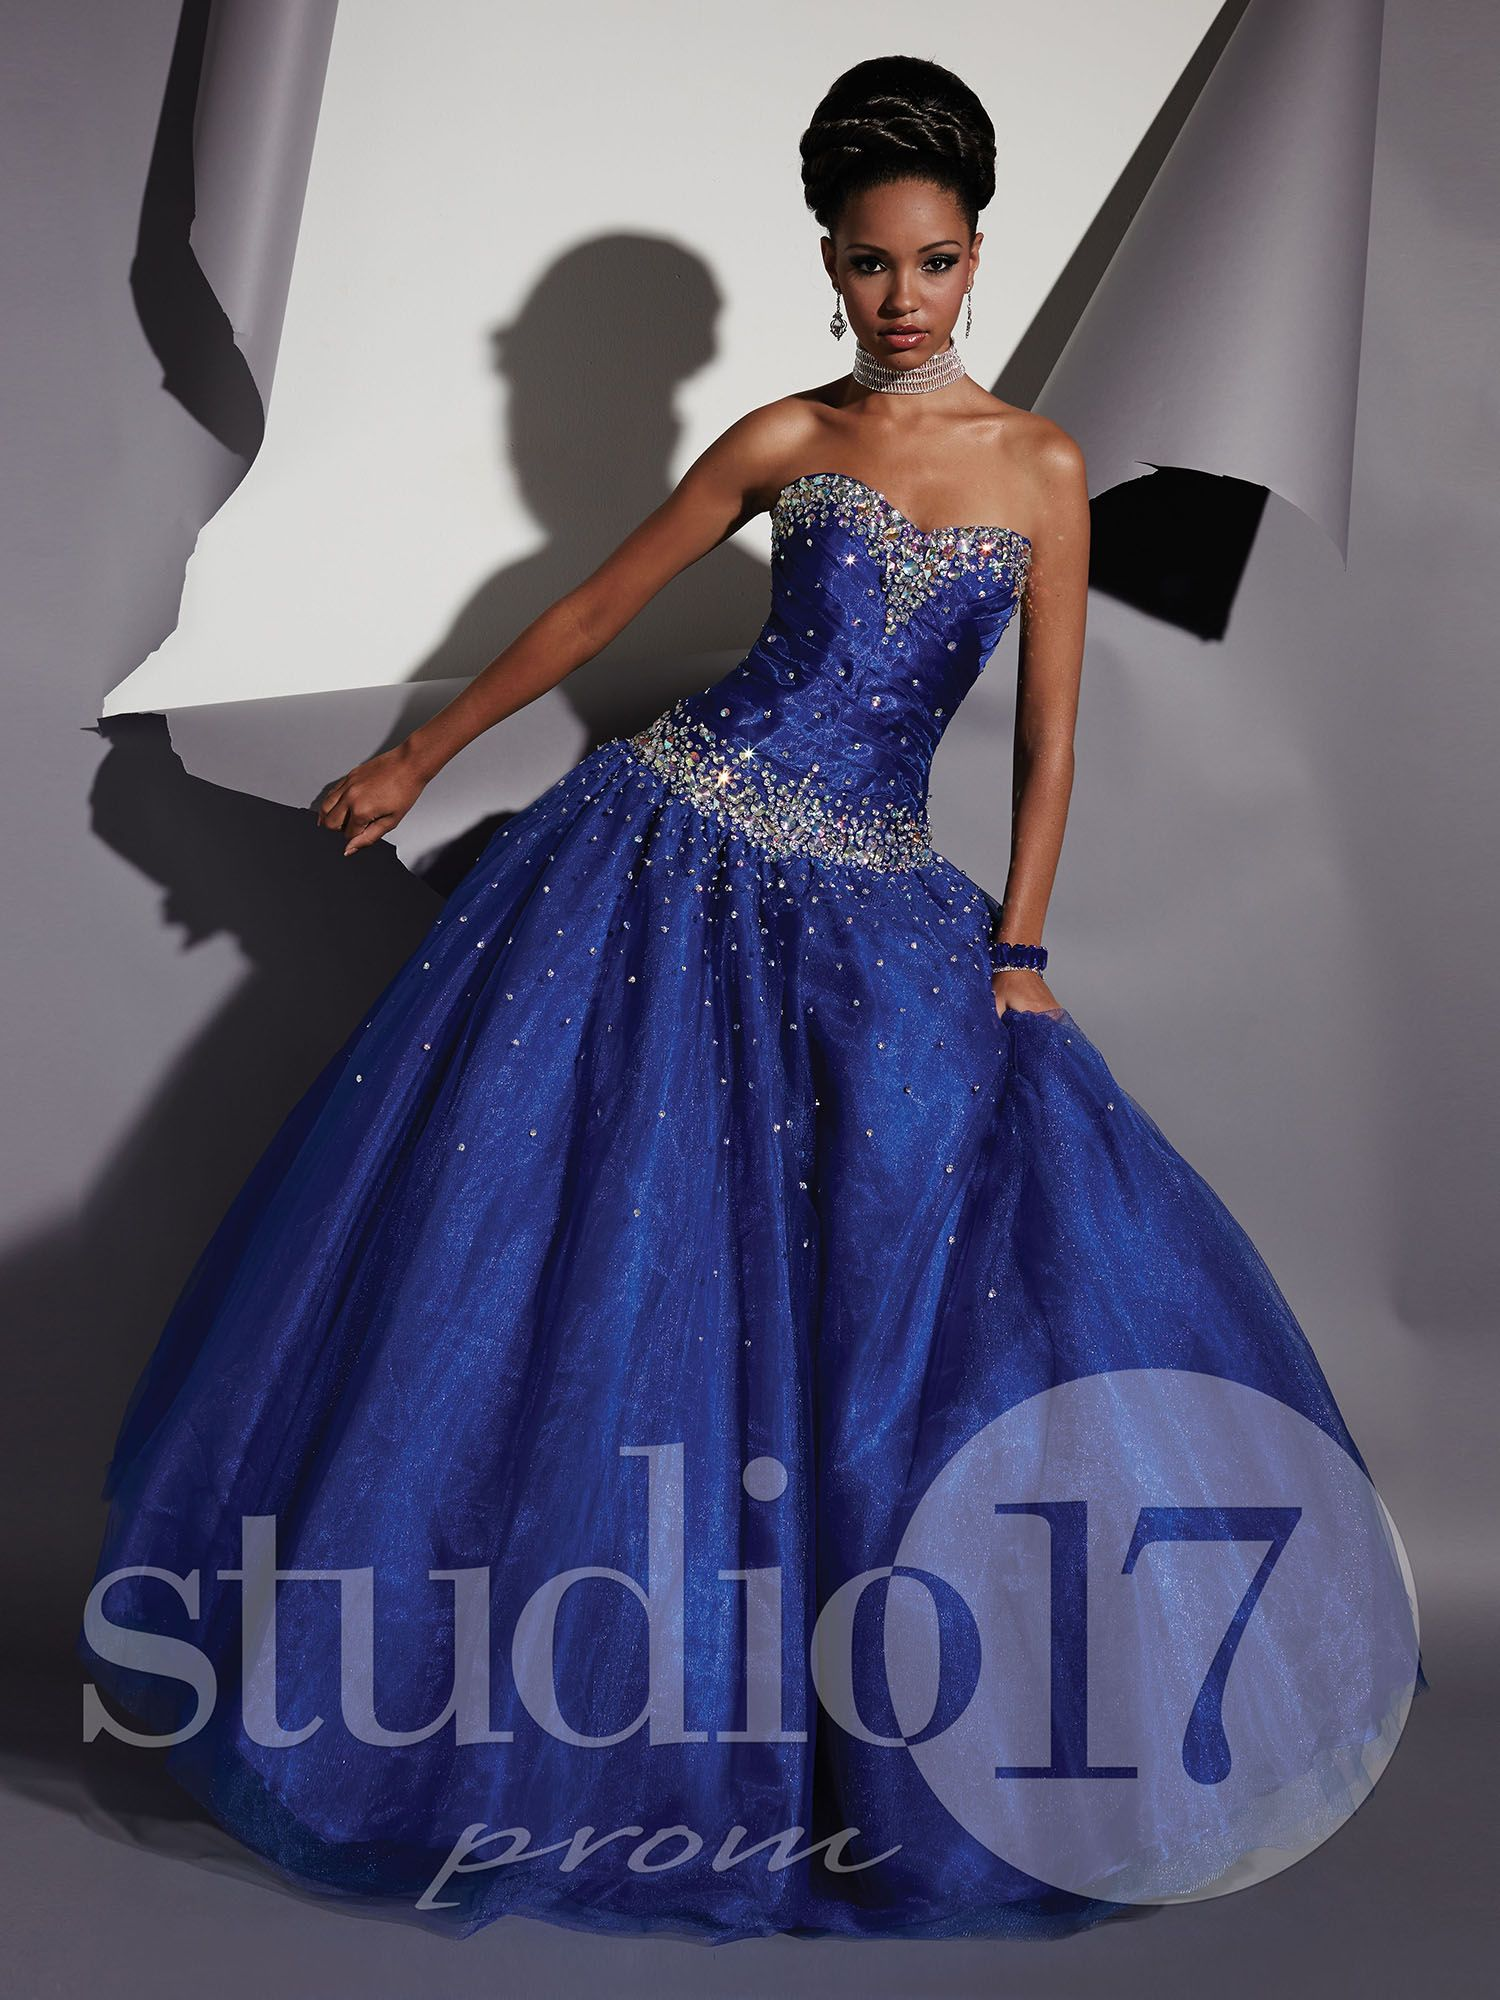 Studio 17 Styles 12470: Strapless sweetheart neckline, low torso, asymmetrically pleated bodice, heavy AB rhinestone encrusted bust and waist trim, full tulle ball gown, lace-up back. #prom #prom2014 #pageant #dress #specialoccasion #formalwear #studio17 #houseofwu